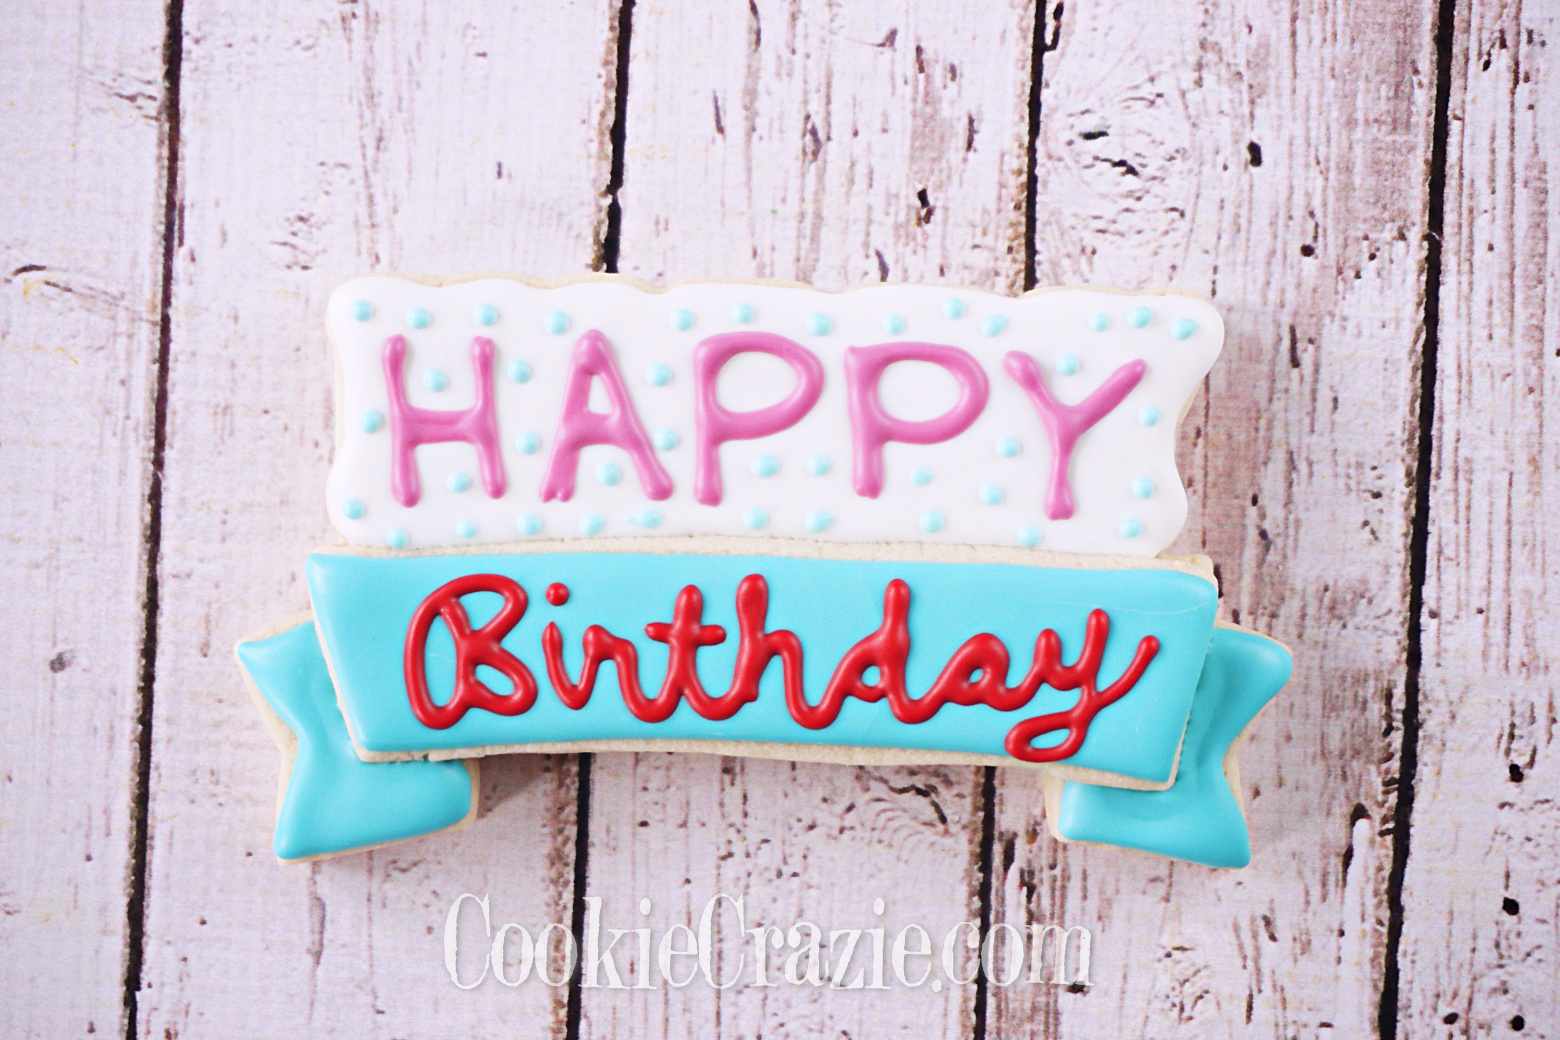 Happy Birthday Banner Decorated Sugar Cookie YouTube video  HERE